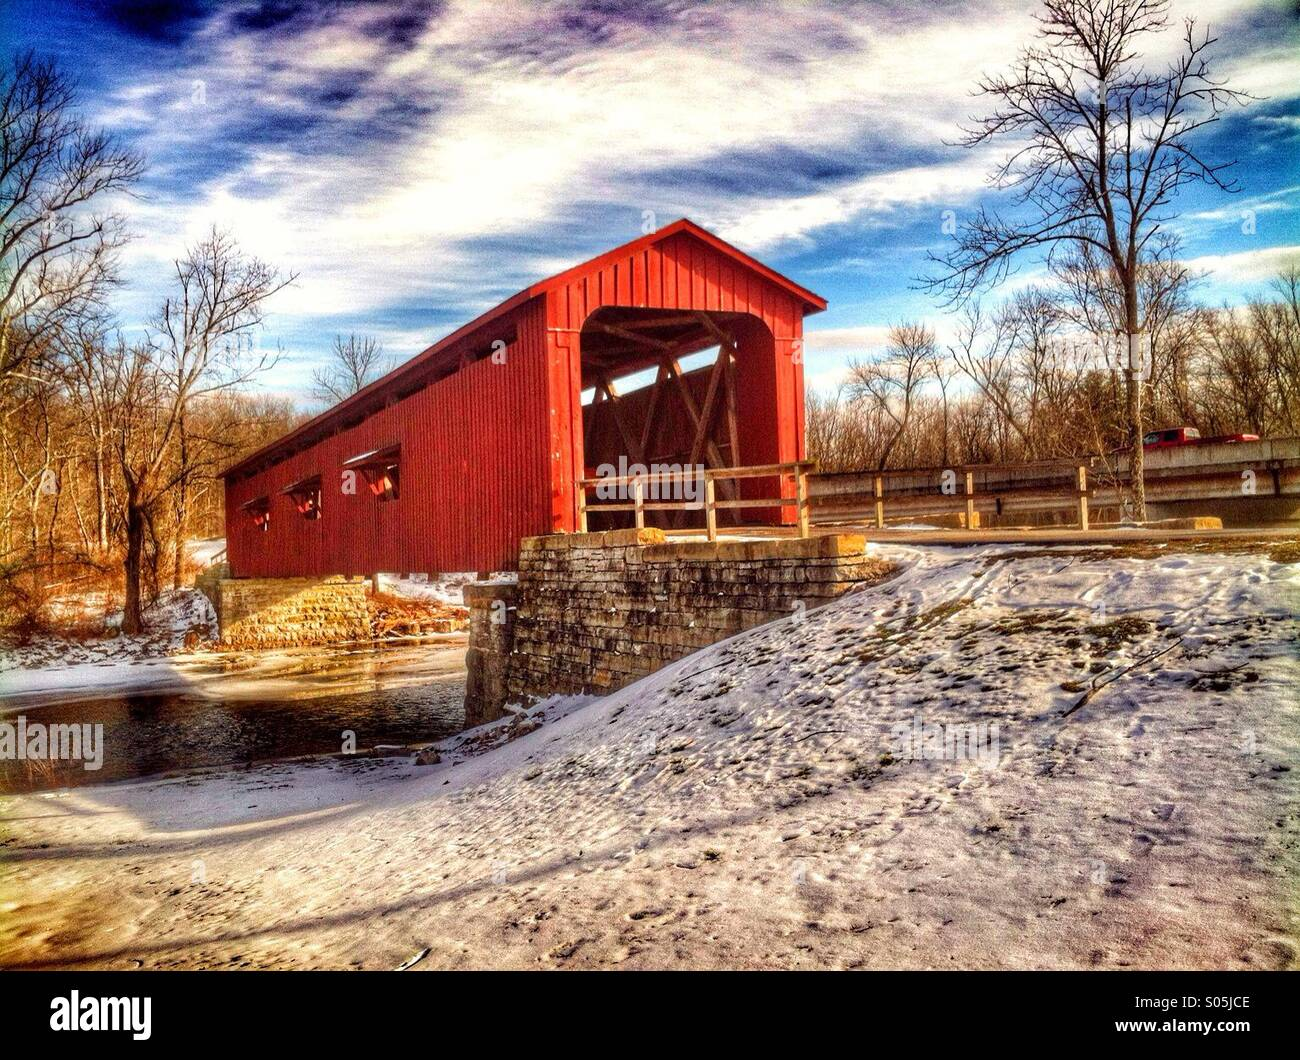 The Red Covered Bridge - Stock Image